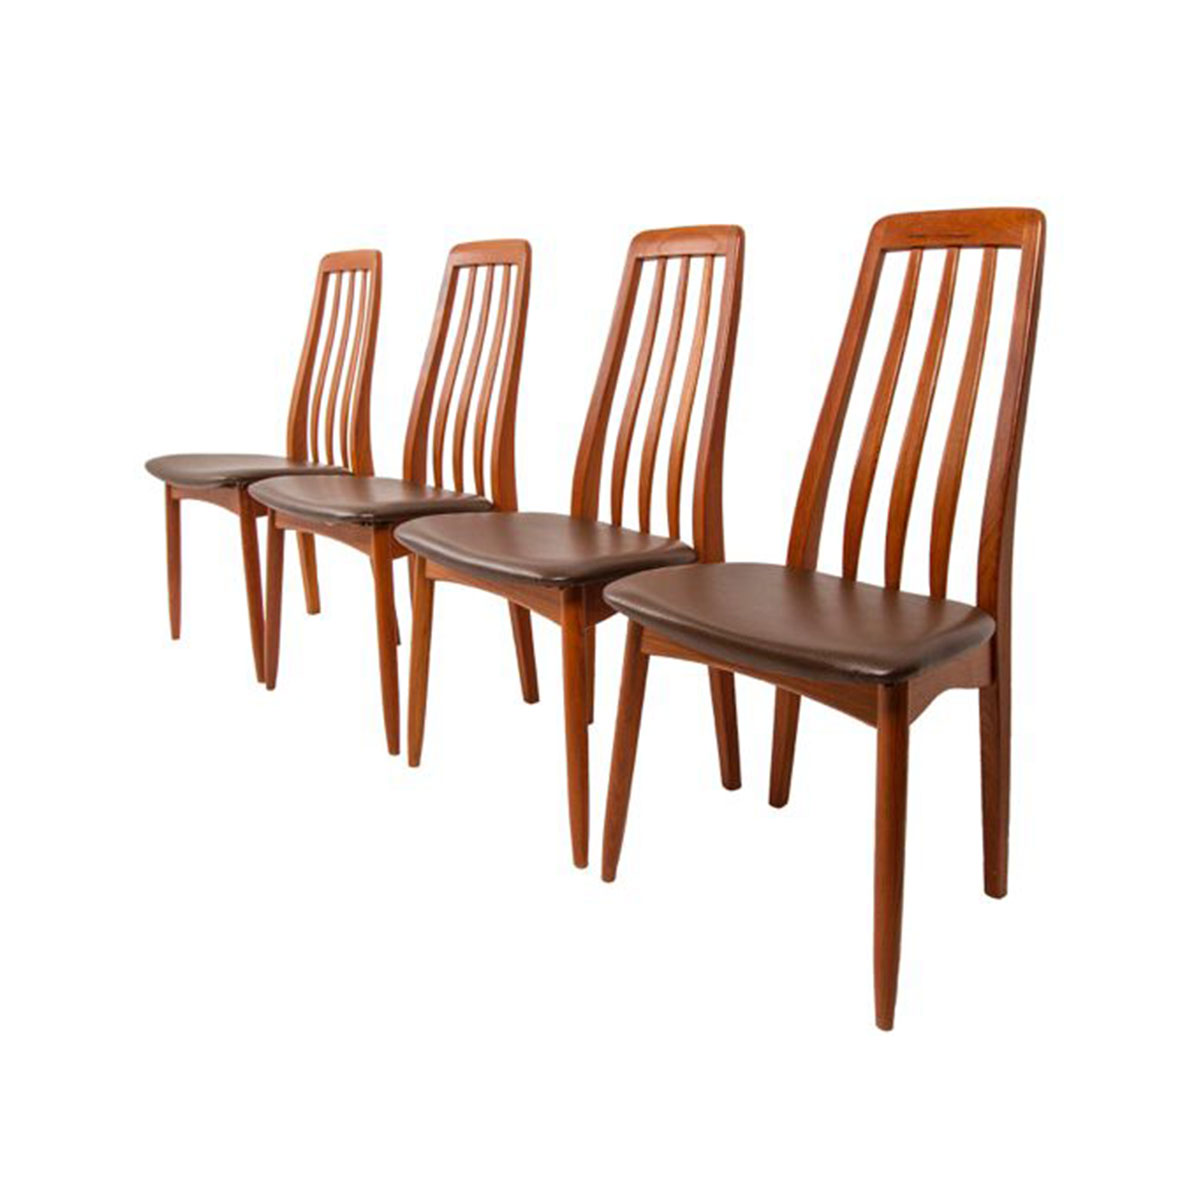 Set of 4 Slim Teak Danish Modern Tall Dining Chairs